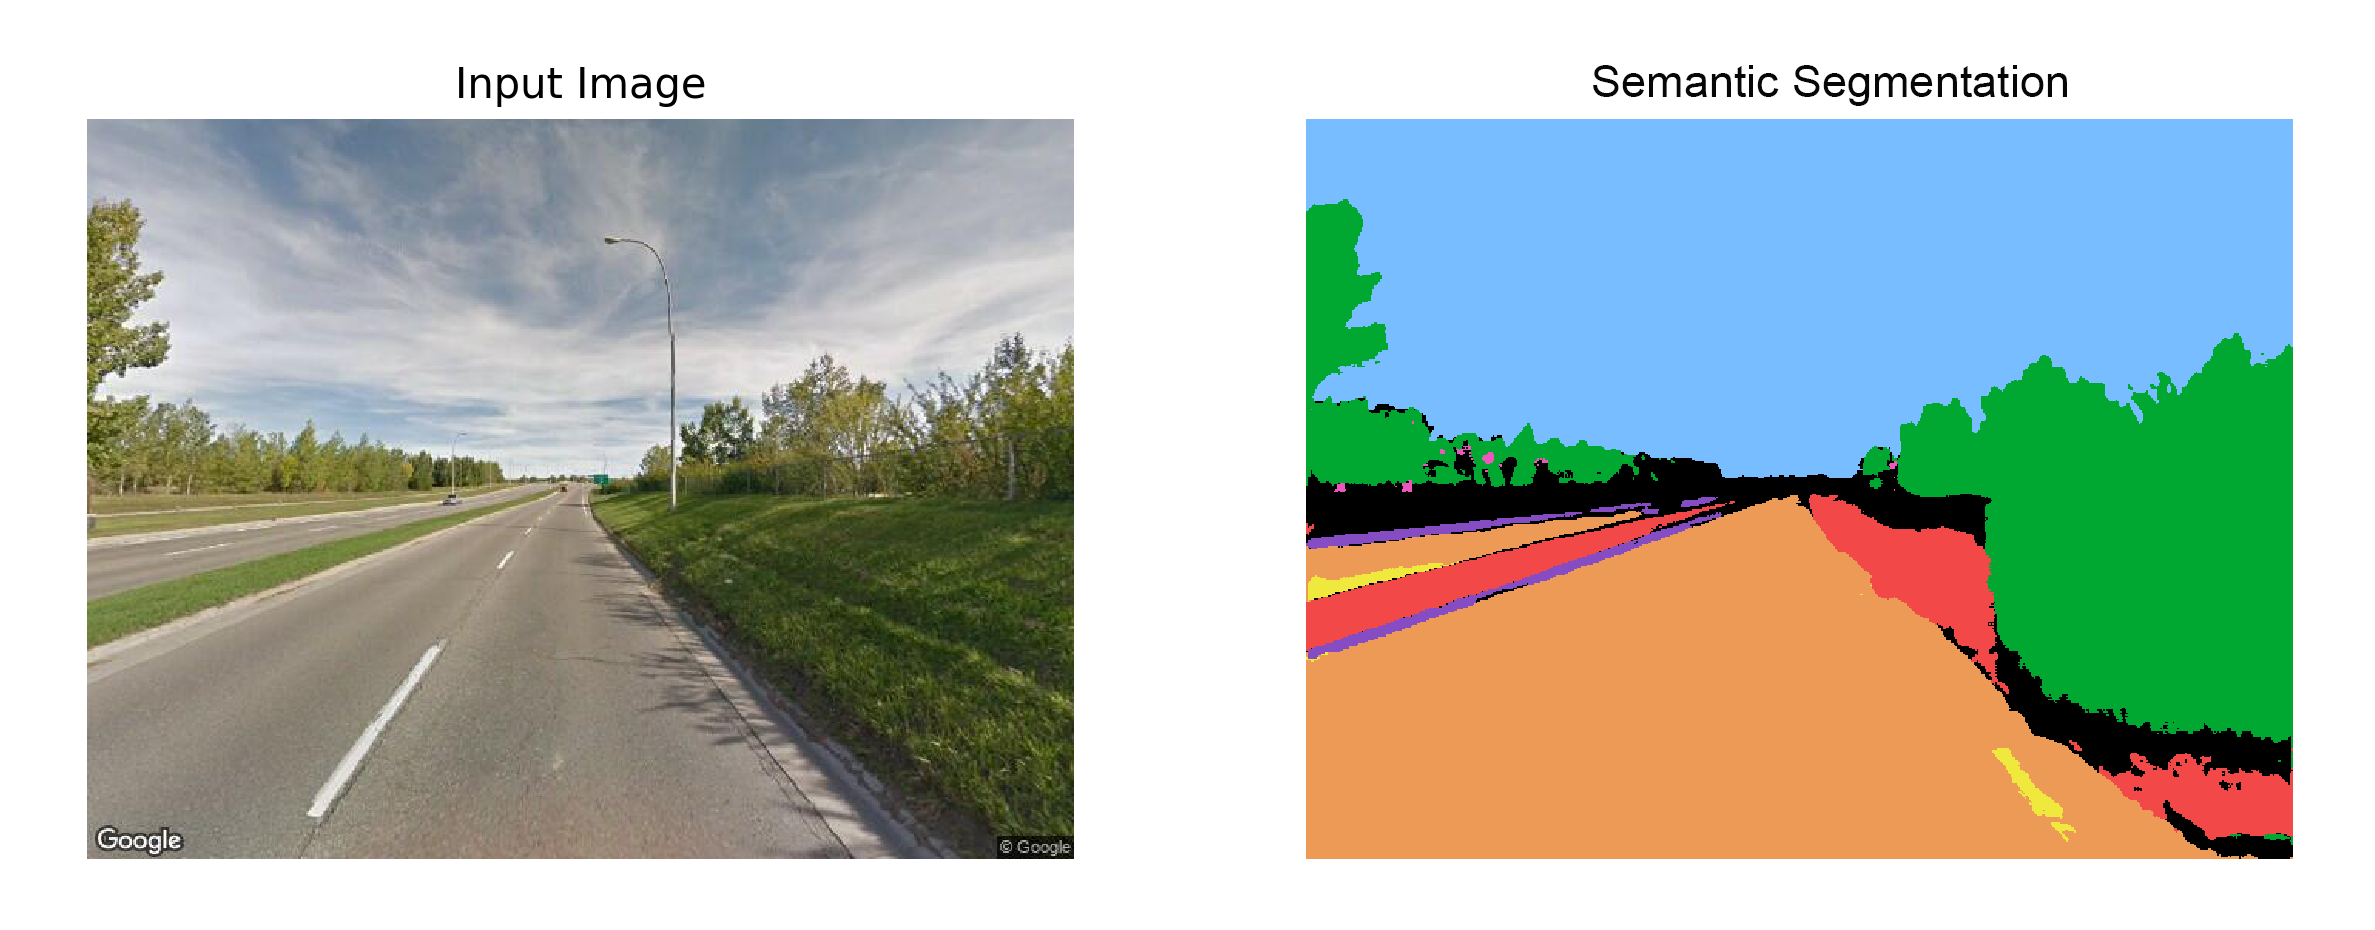 Segmenting Street-Level Images with Computer Vision using